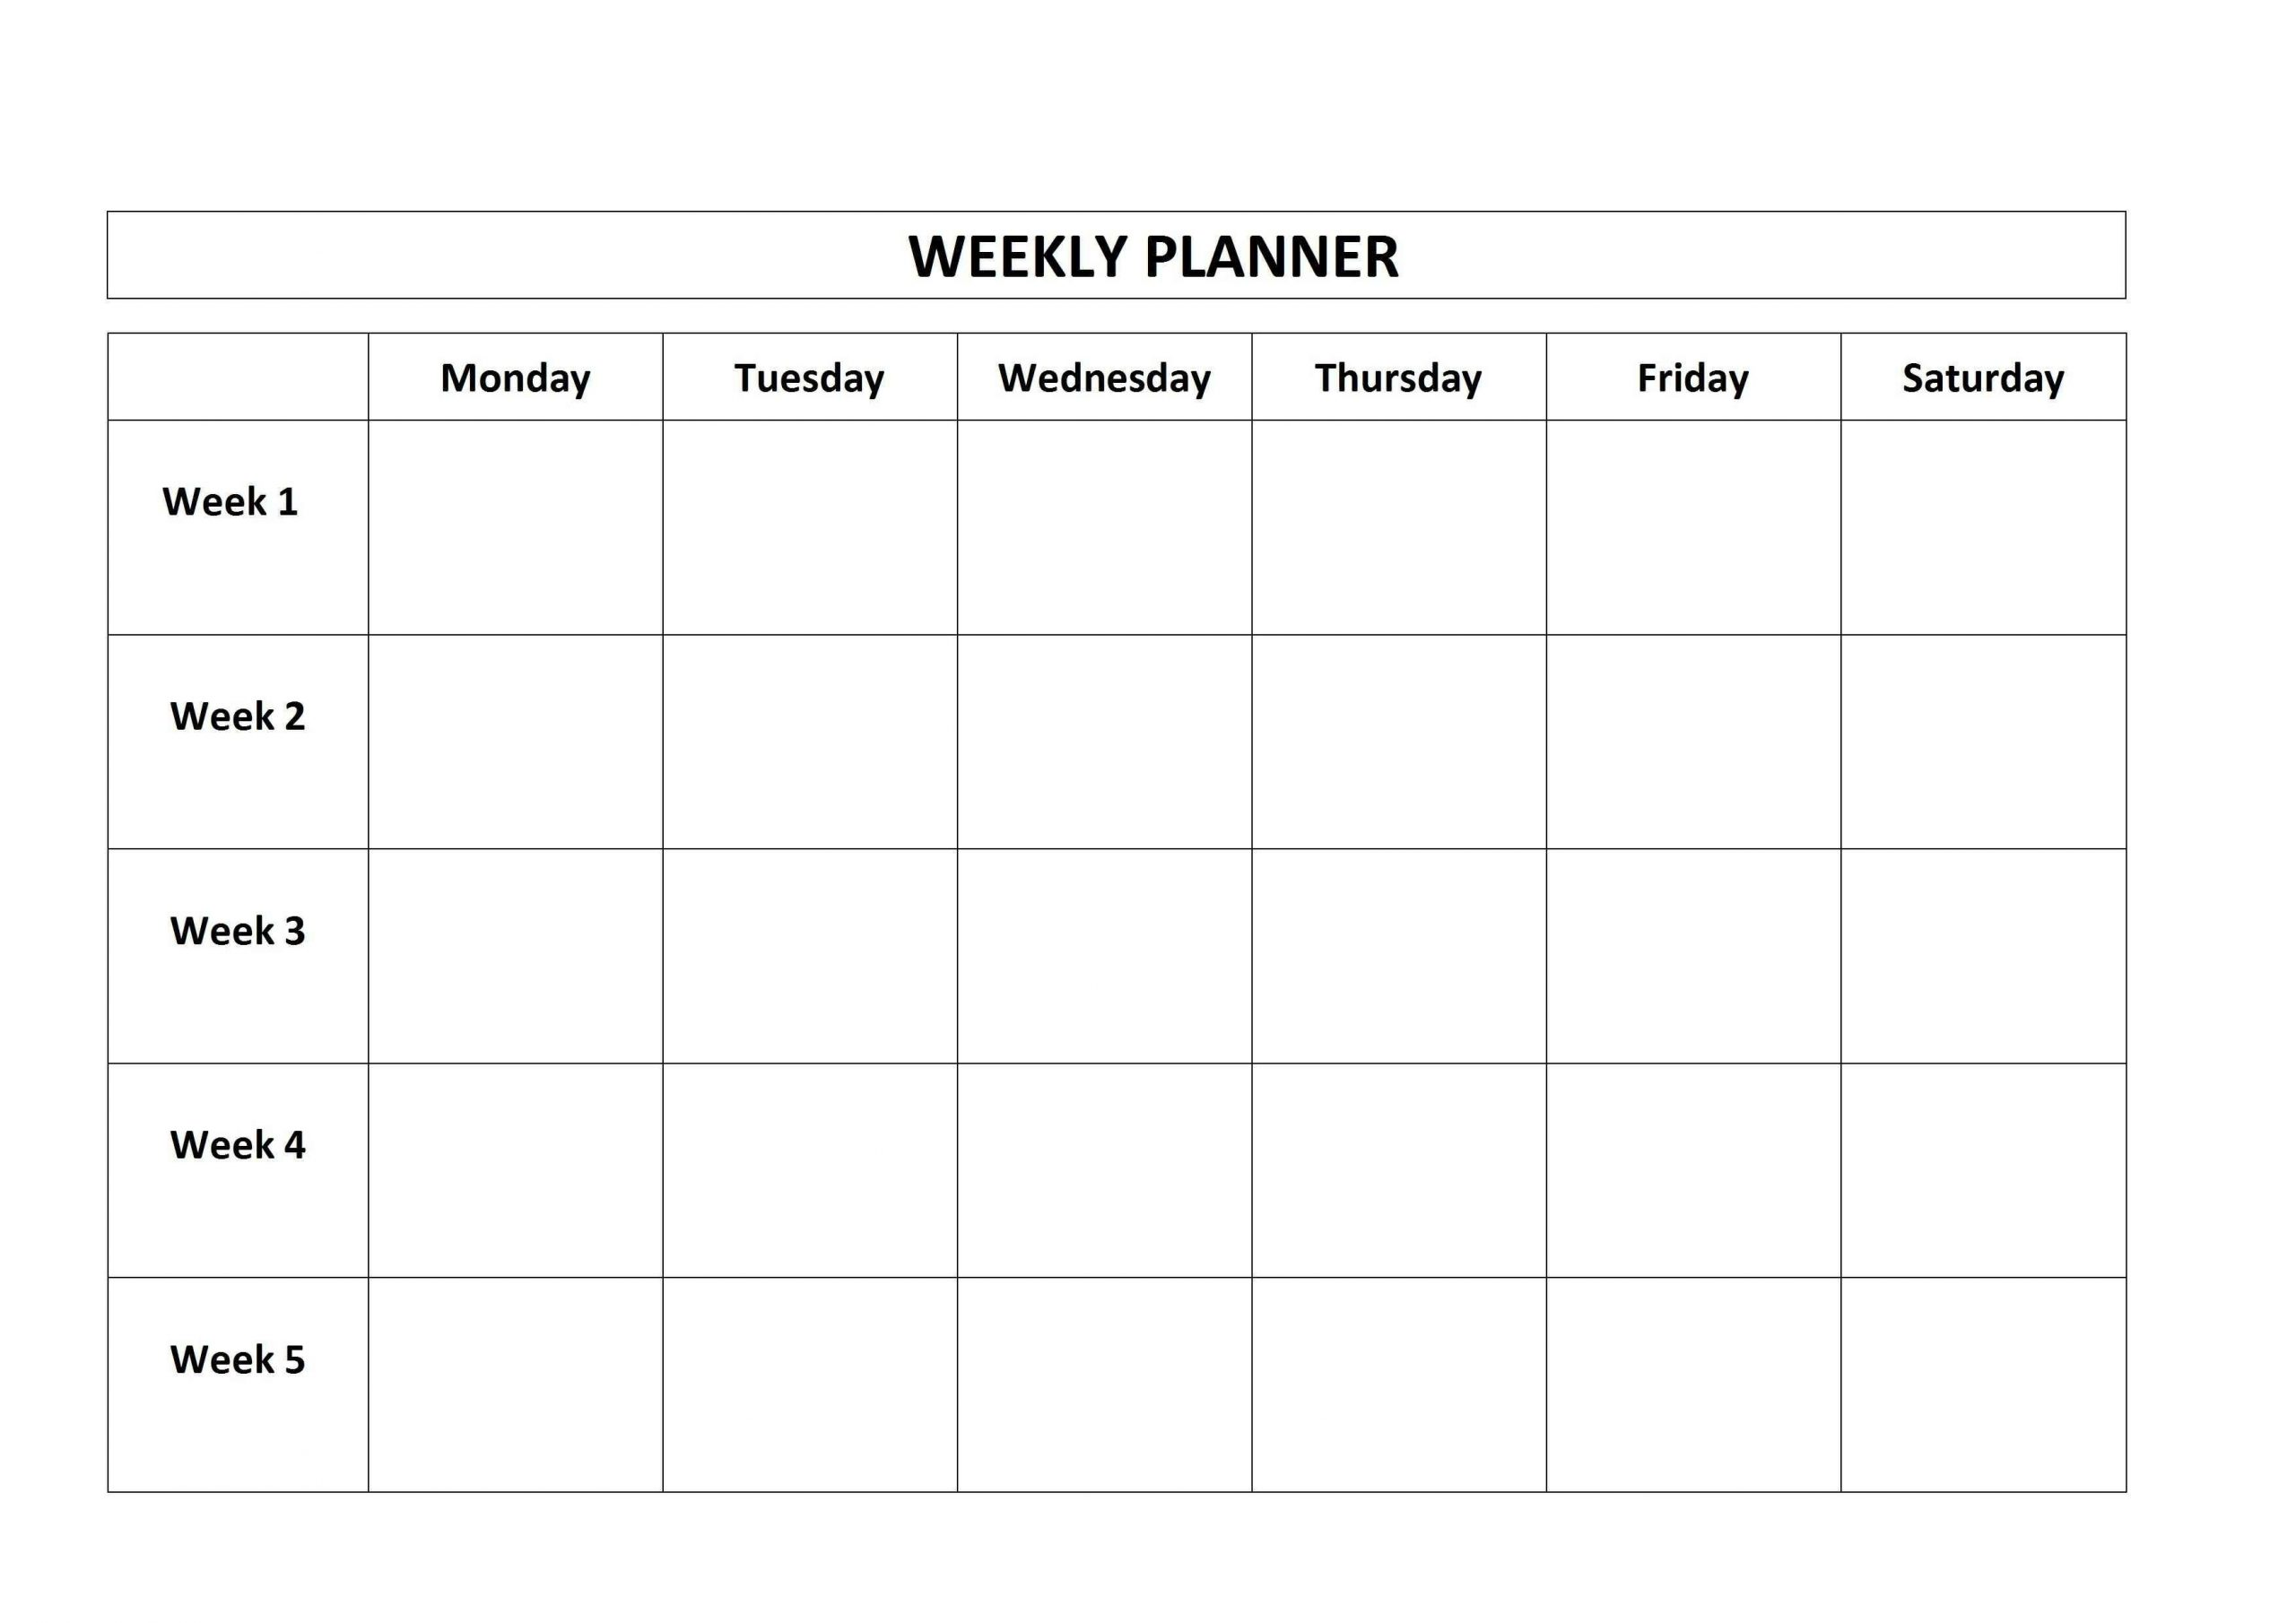 Monday To Friday Schedule Template | Example Calendar Free Printable Monday To Friday Calendar